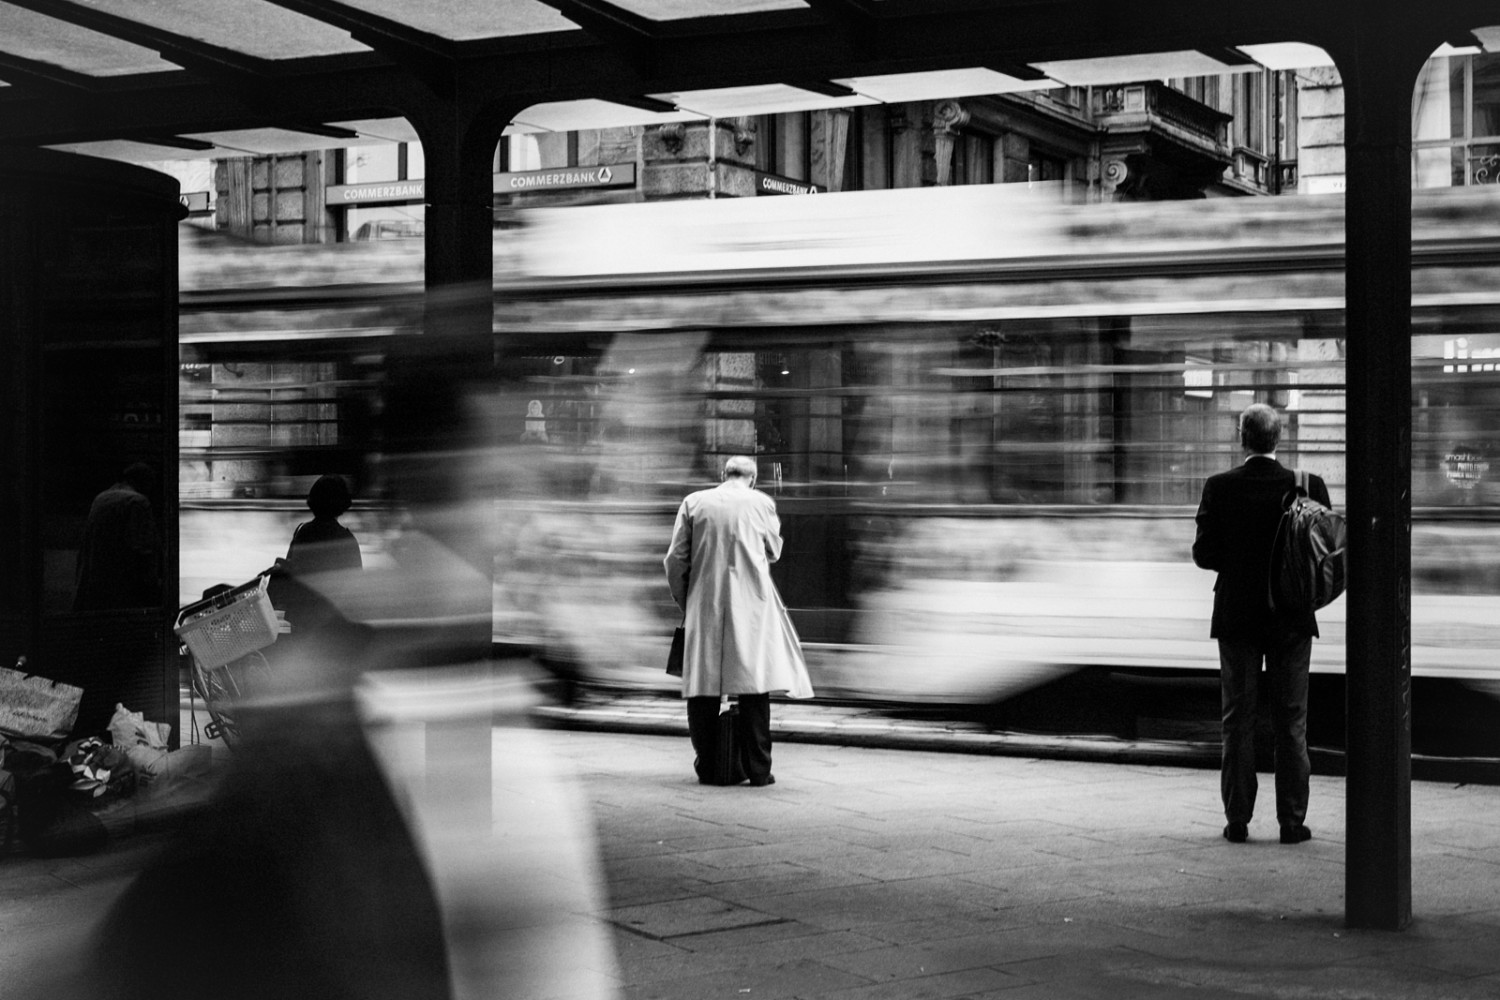 A Simple Secret to Better Street Photography - 500px Blog